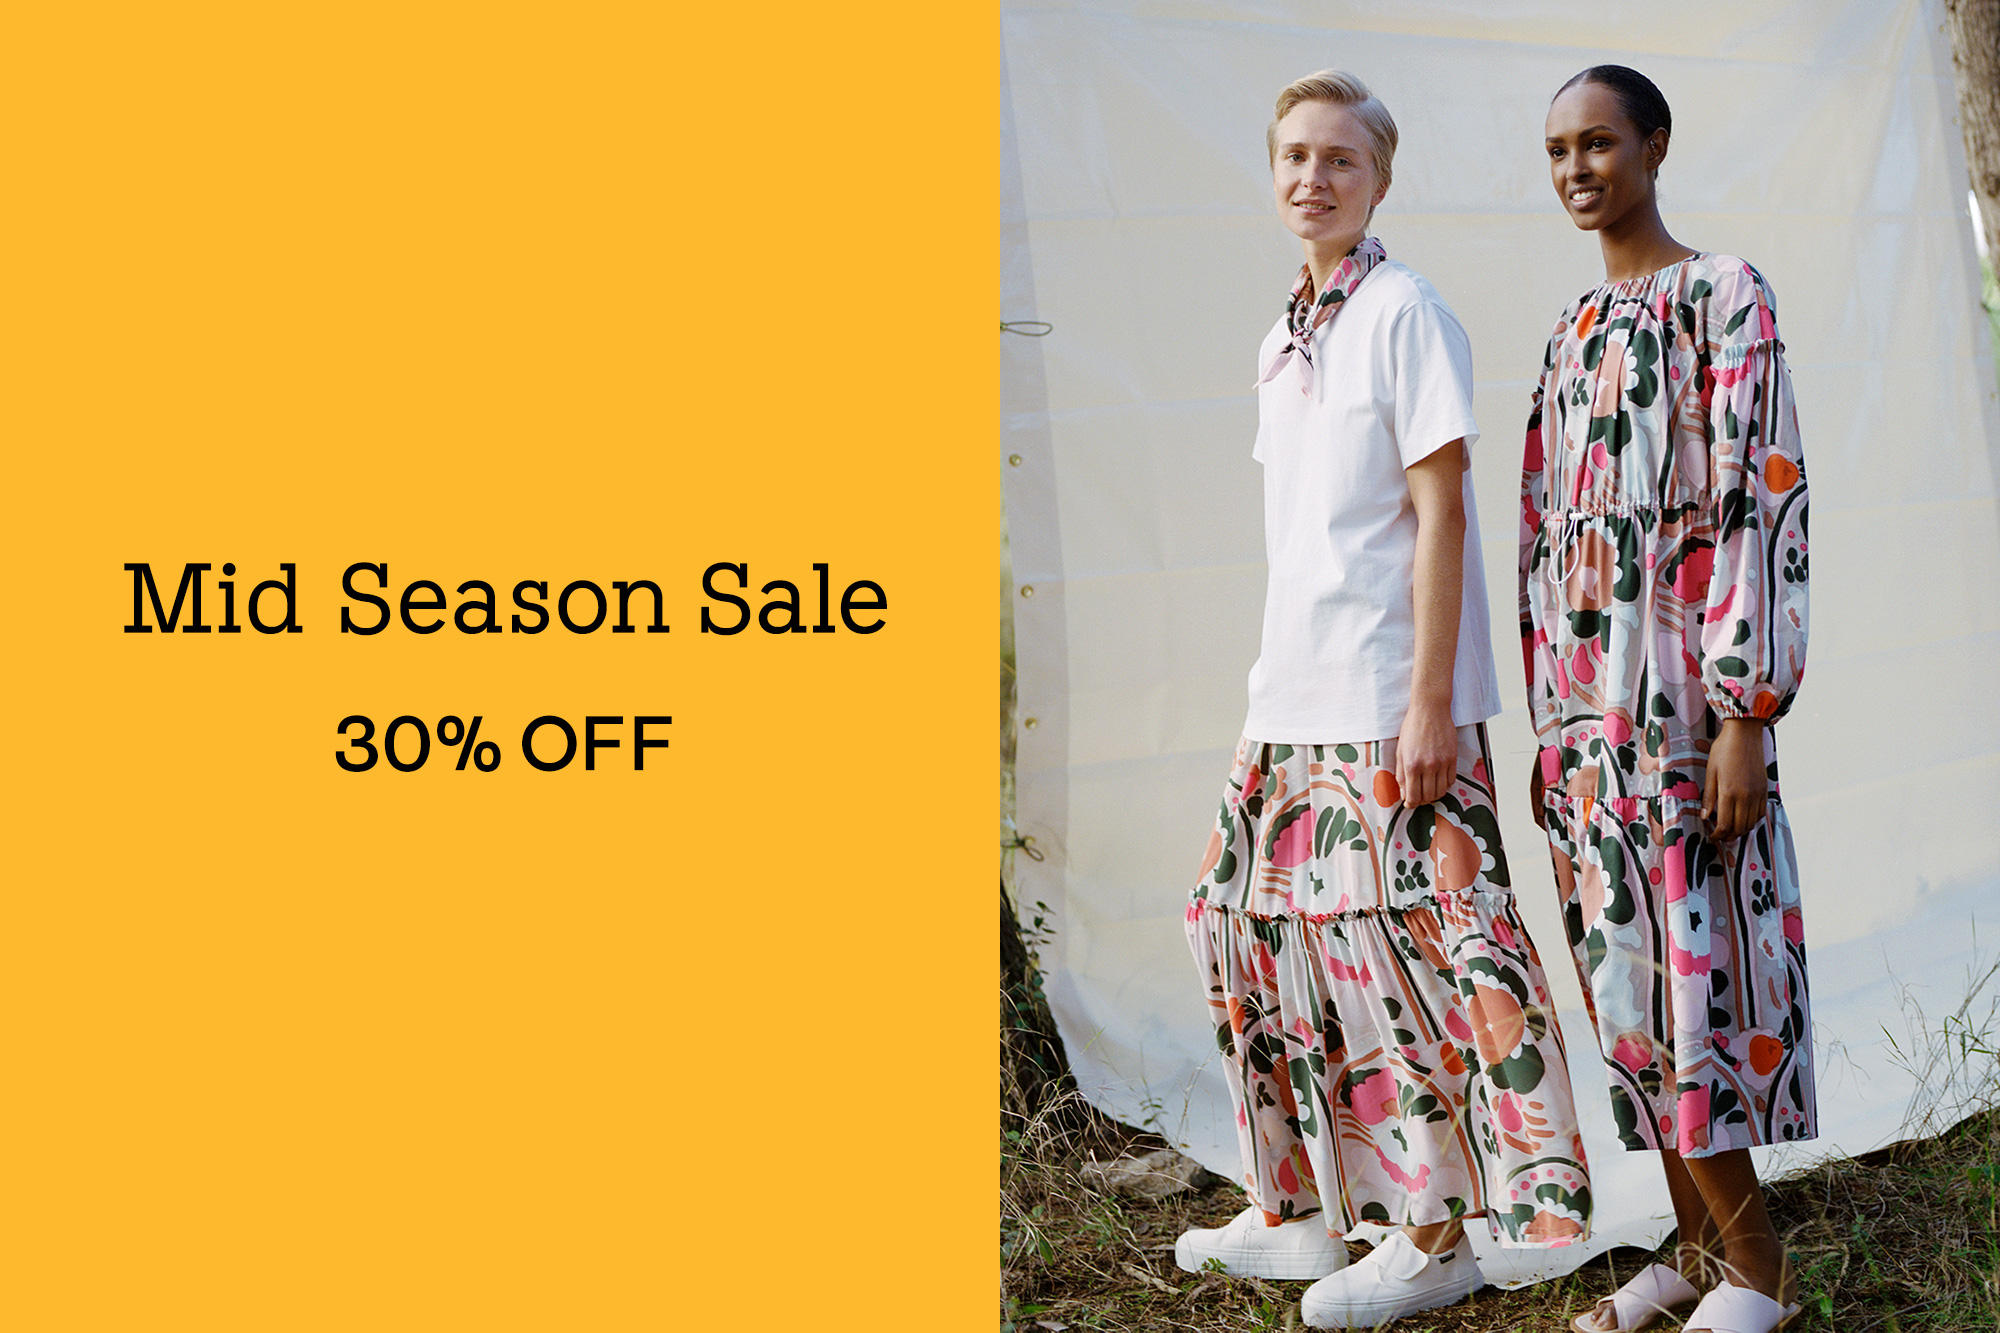 10.16- Mid Season Sale